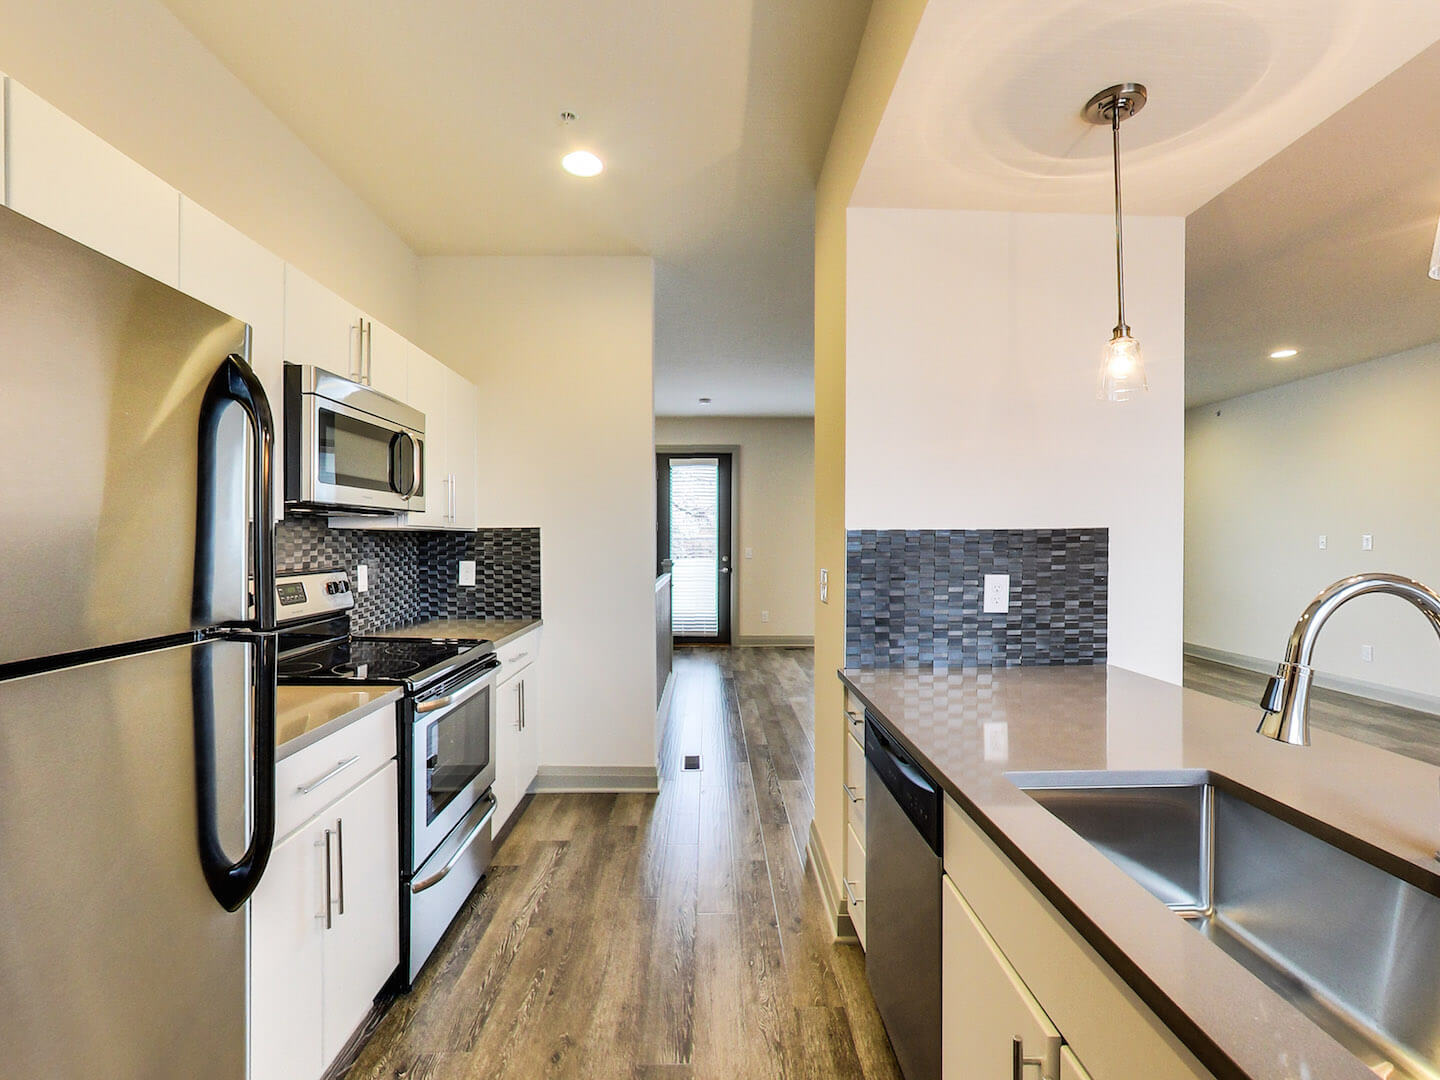 3 Bedroom Townhomes For In Columbus Ohio Best Ideas